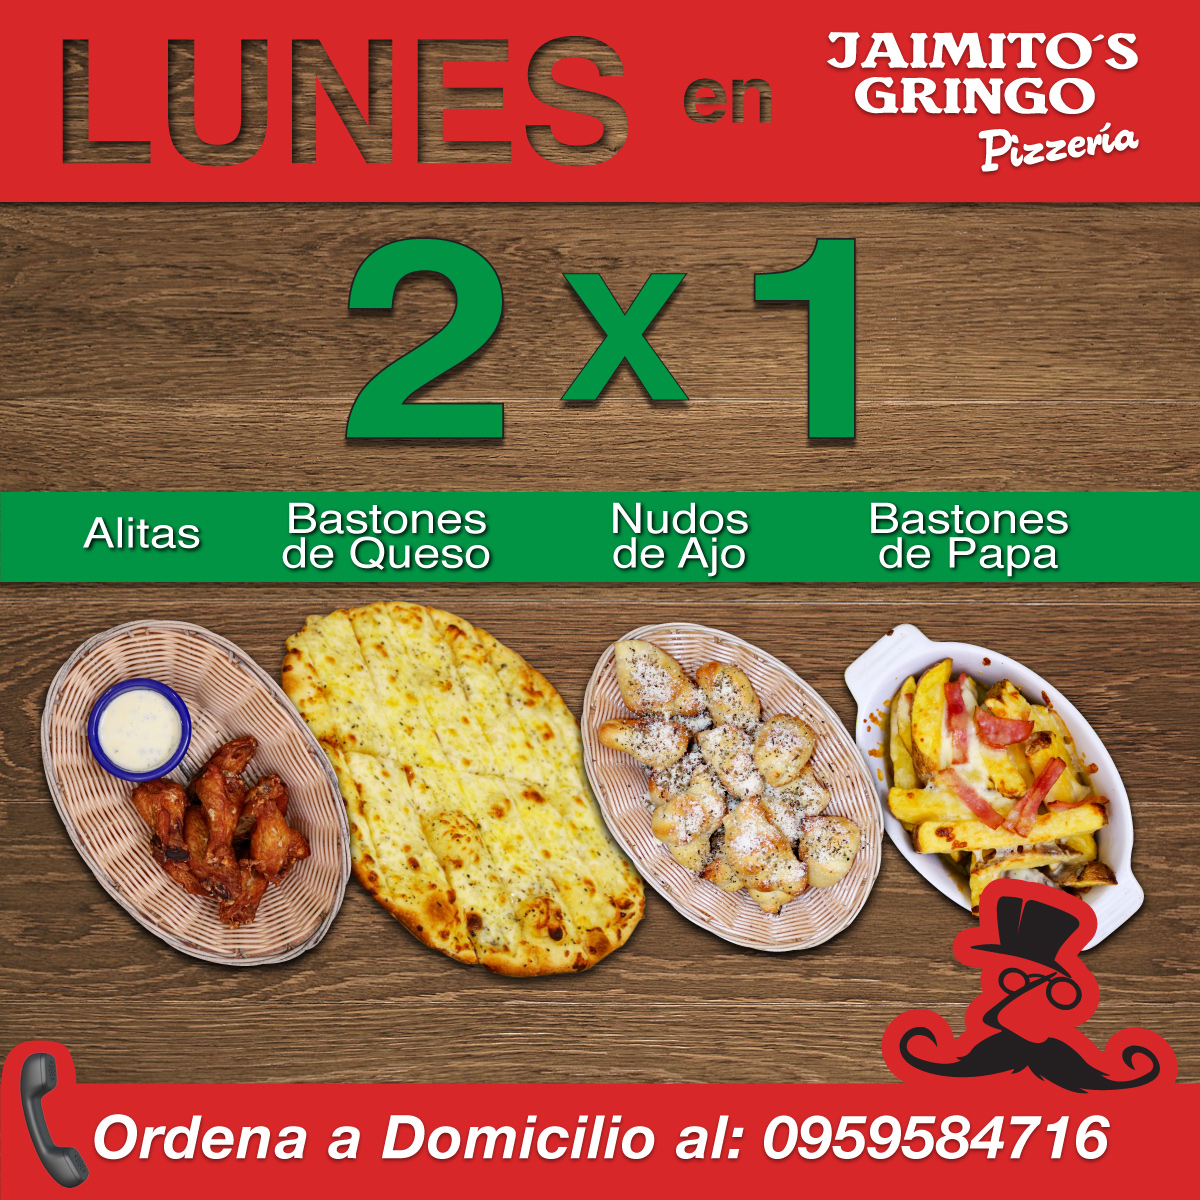 jaimitos-promotion-monday-1-ESPANOL.jpg